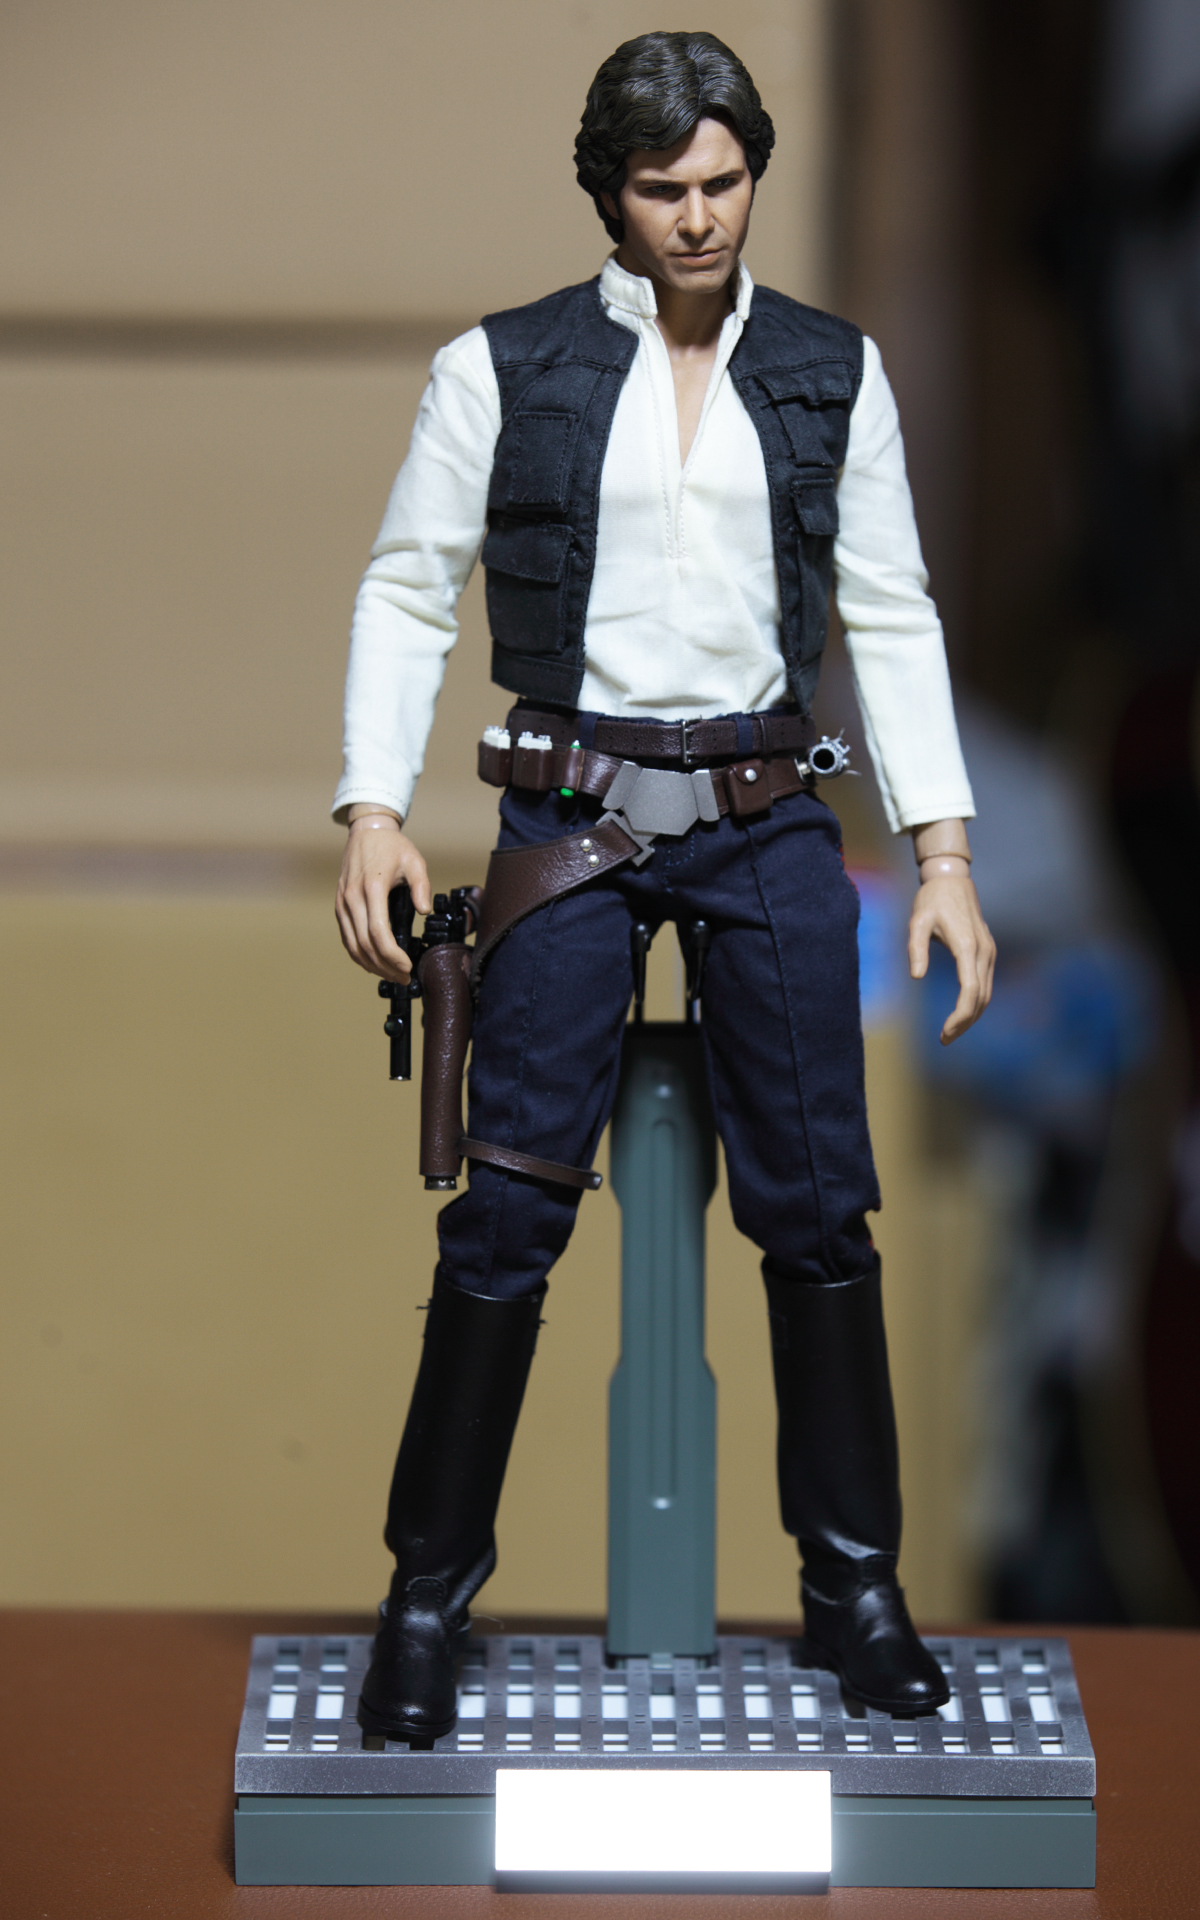 hottoys-star-wars-episode-IV-a-new-hope-han-solo-&-chewbacca set-picture14